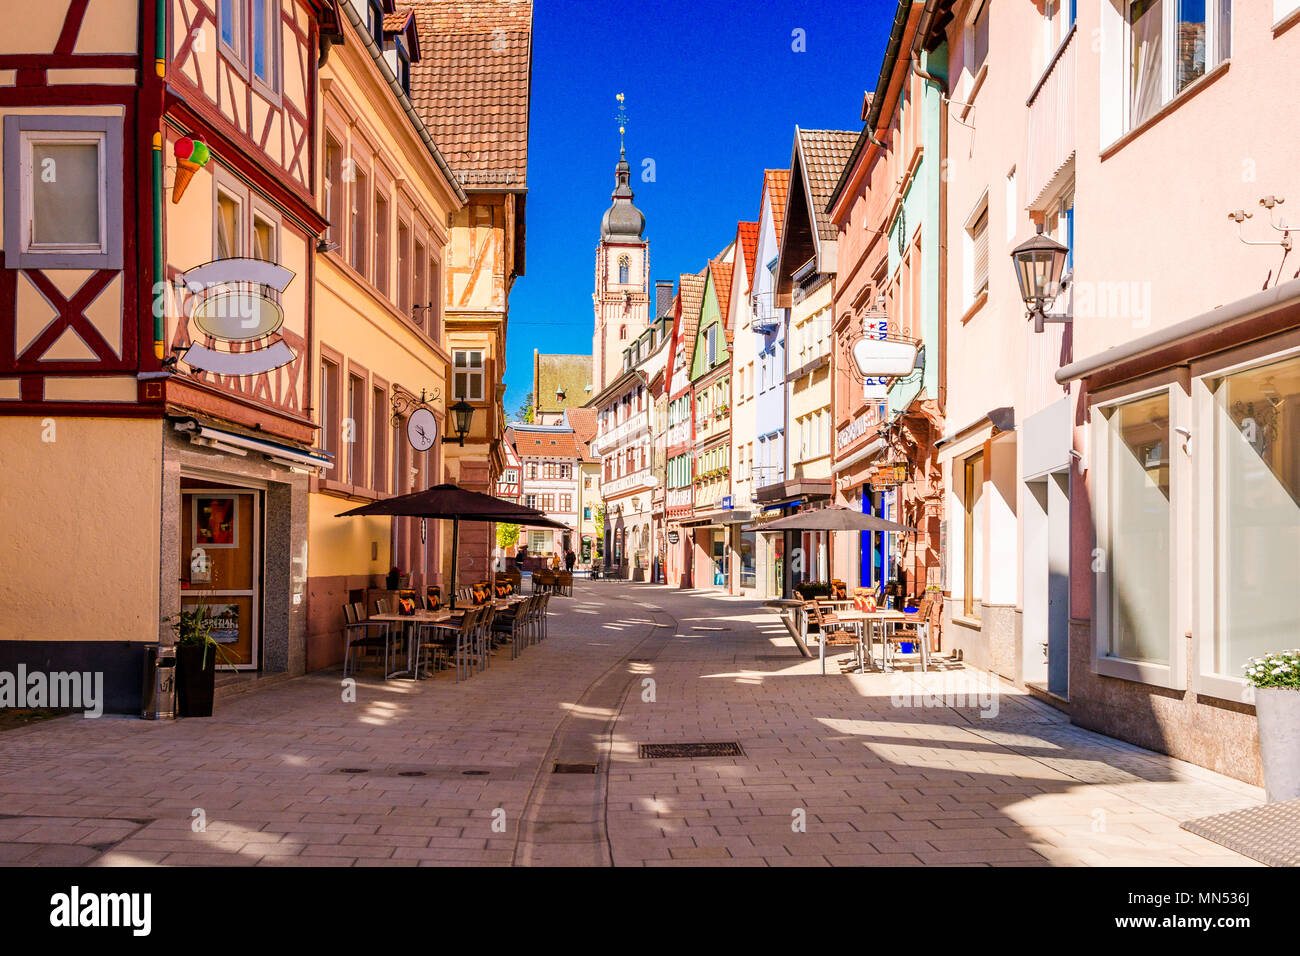 Beautiful scenic view of the old town in Tauberbischofsheim - part of the Romantic Road, Bavaria, Germany Stock Photo